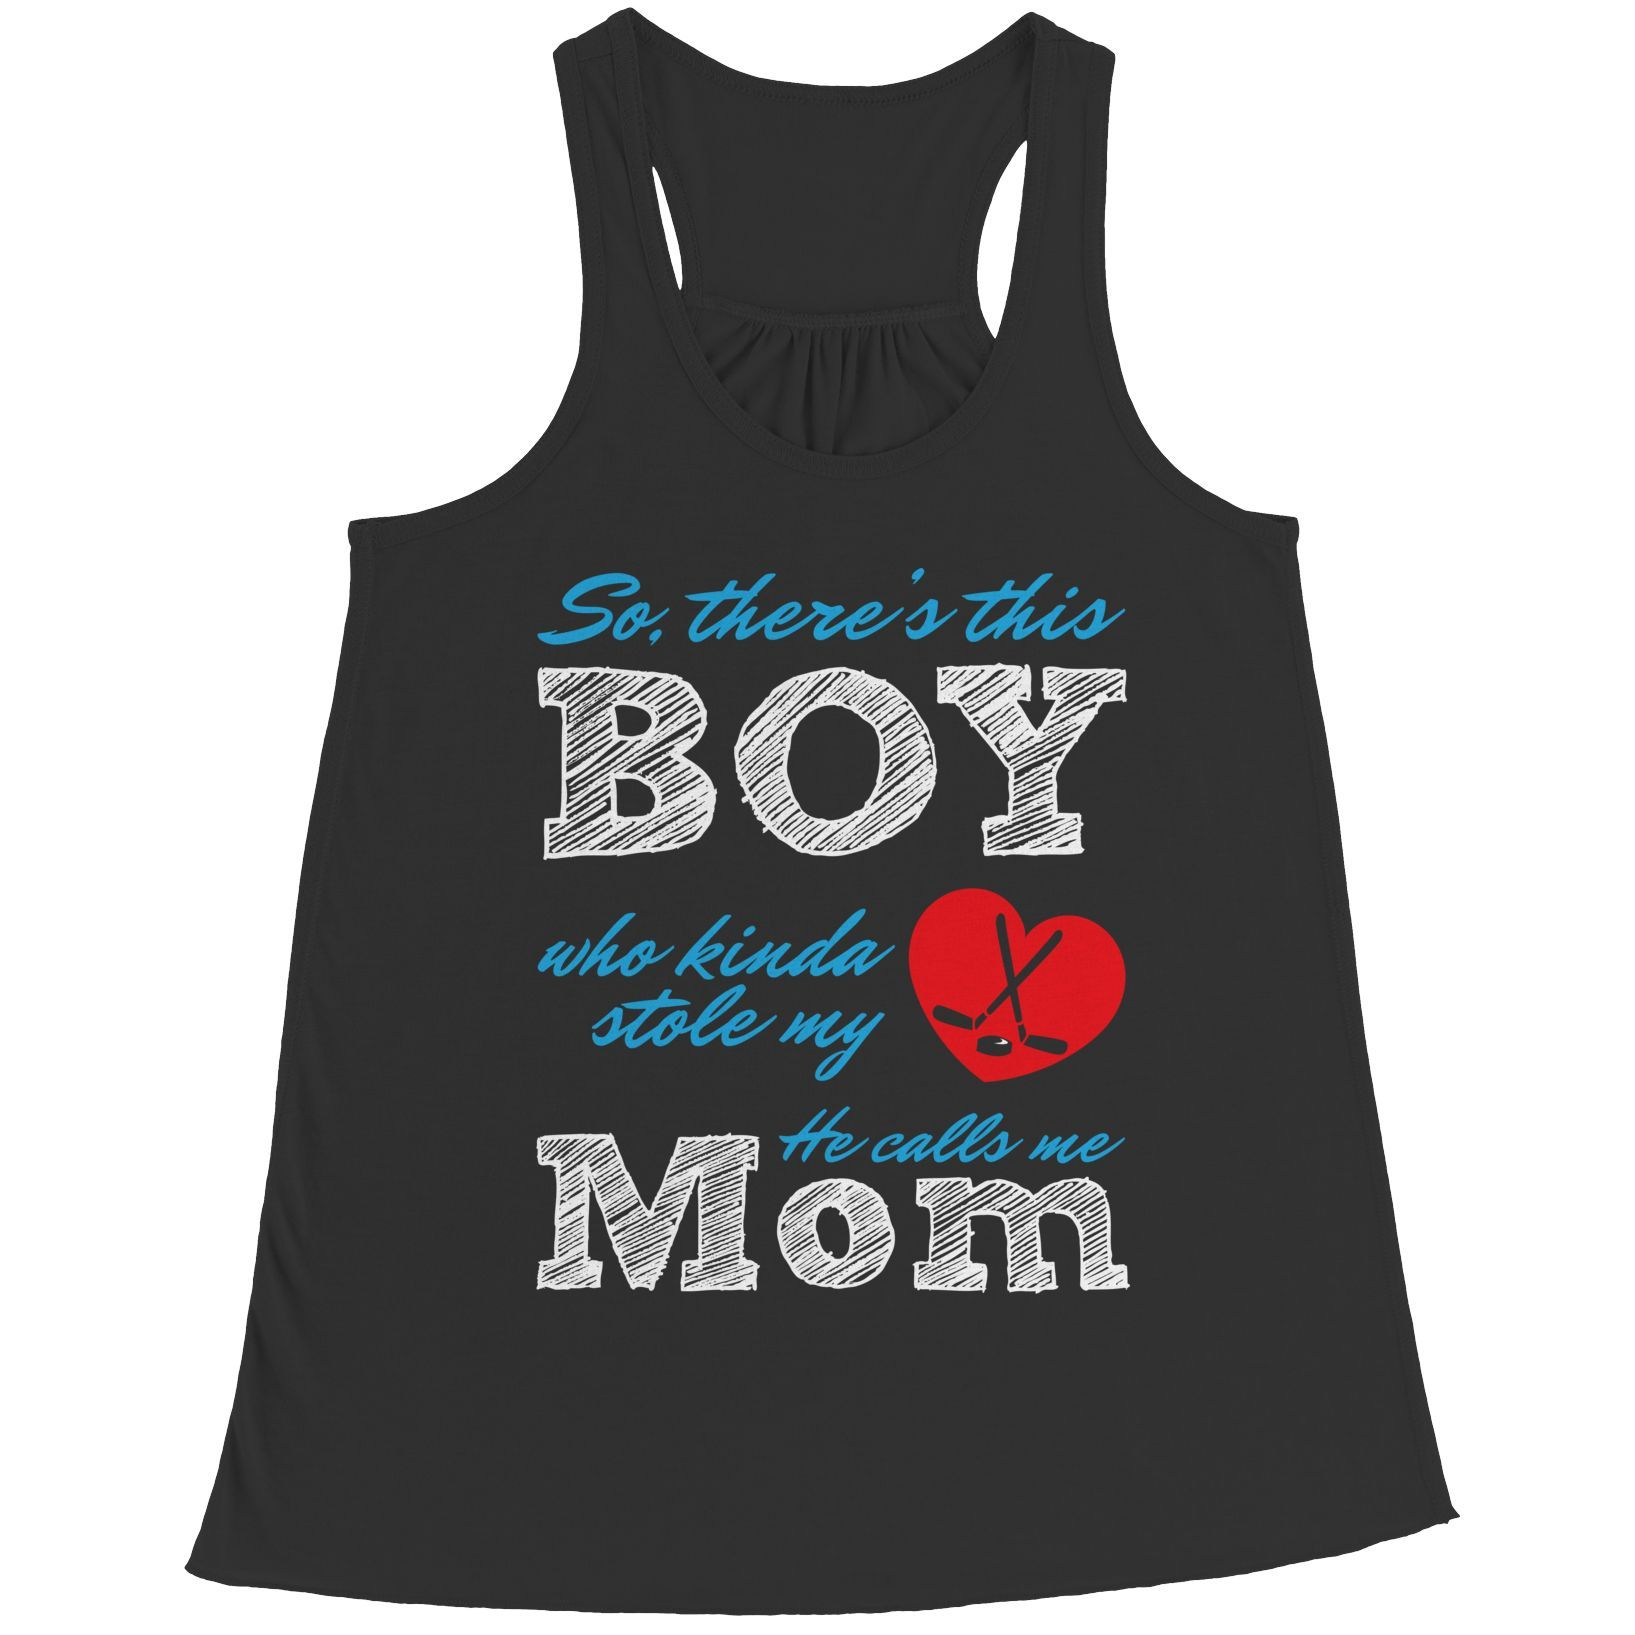 Limited Edition - So, There's this Boy who kinda stole my heart. He calls me Mom (hockey)